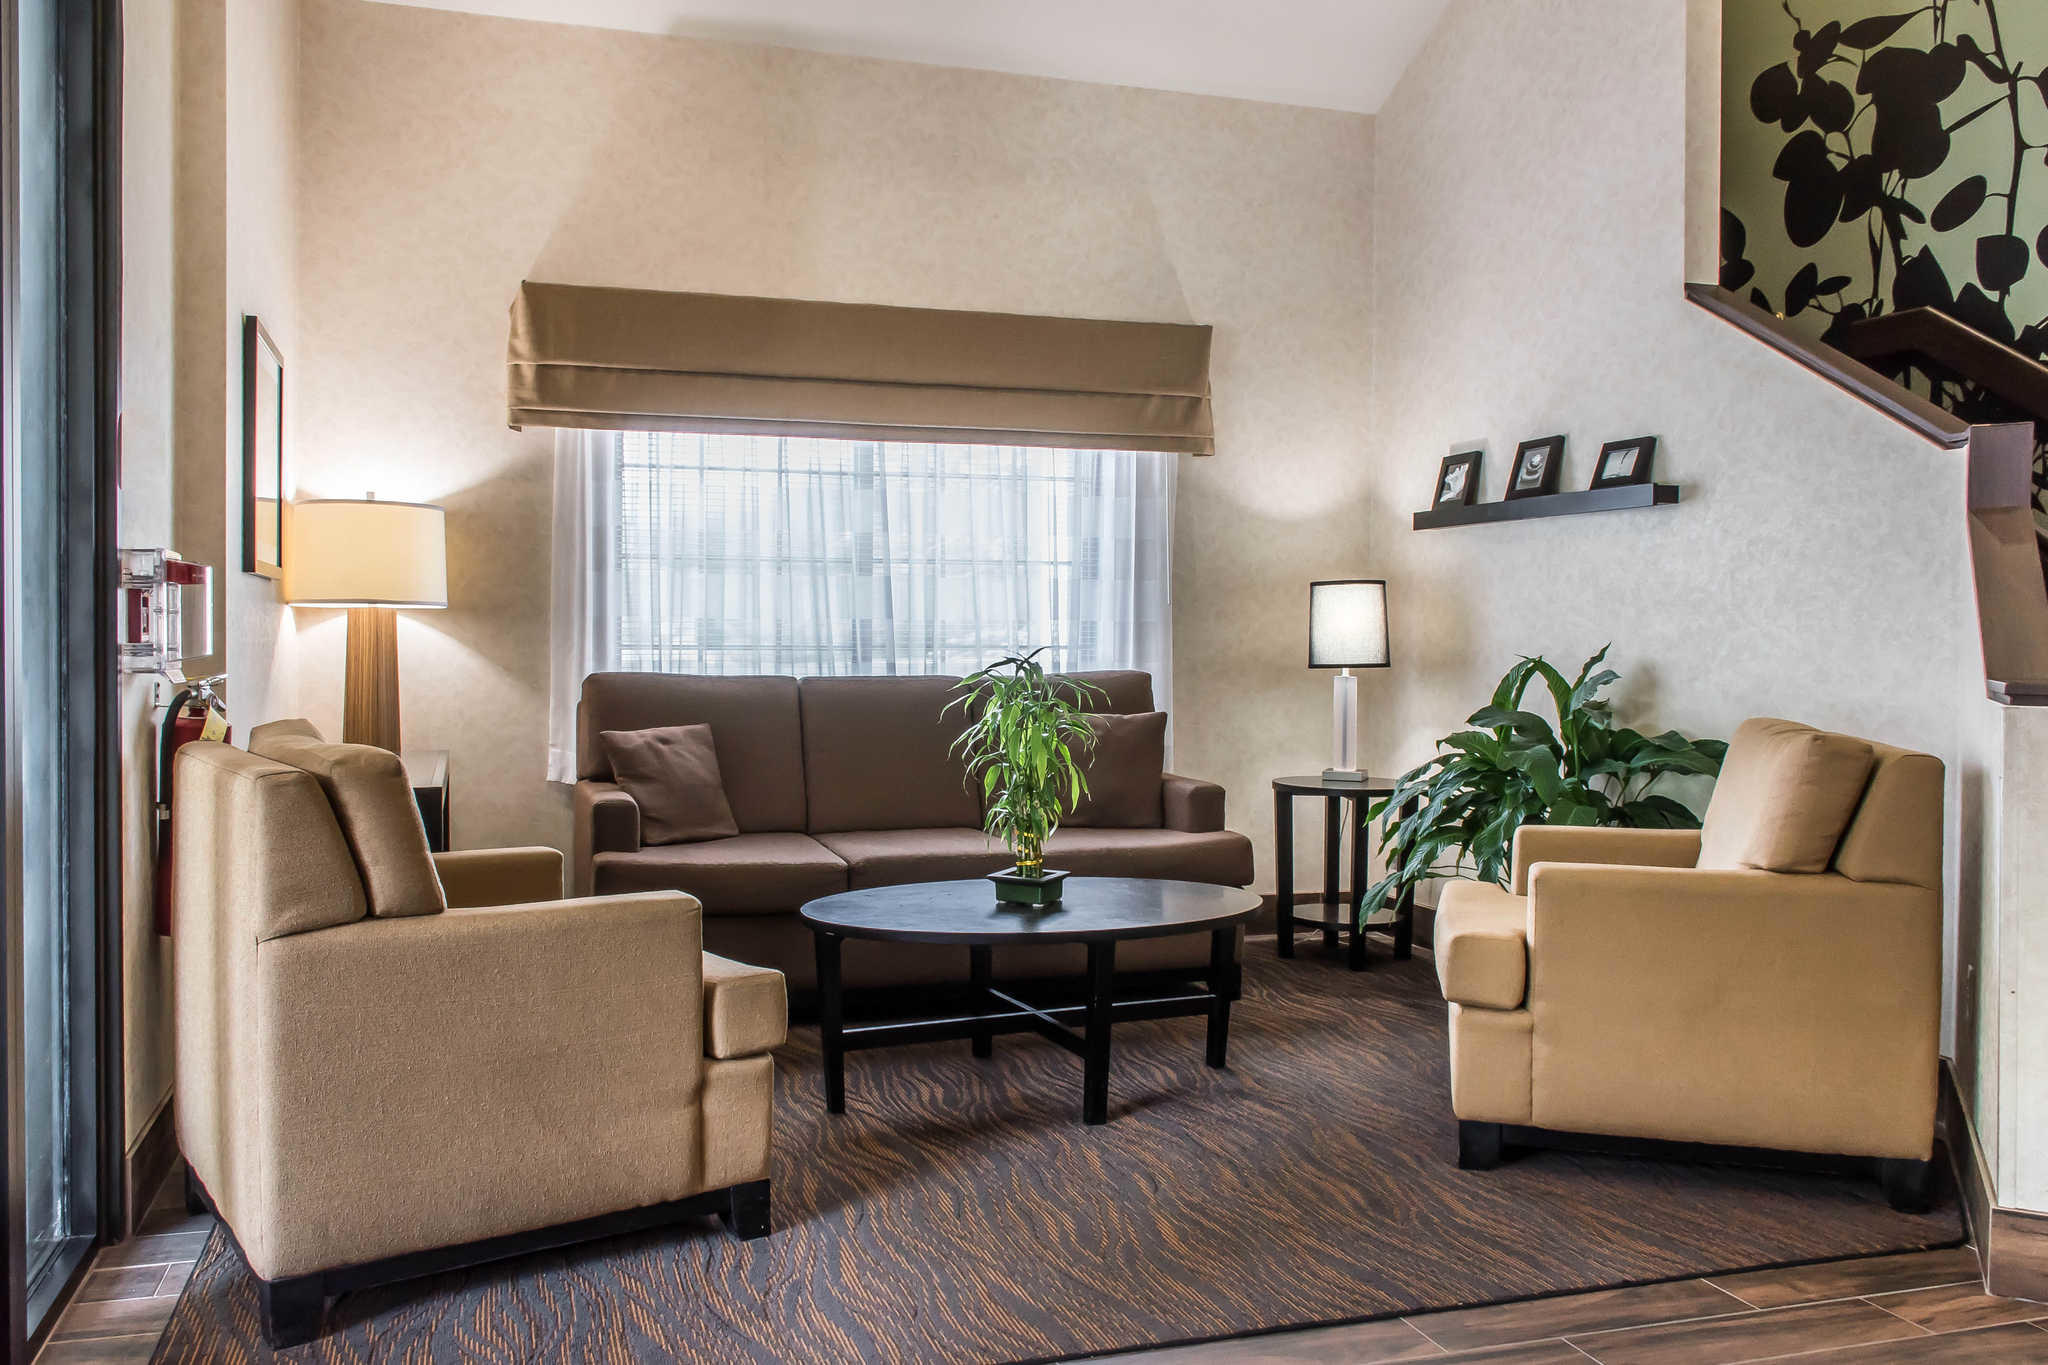 Sleep Inn & Suites of Lancaster County